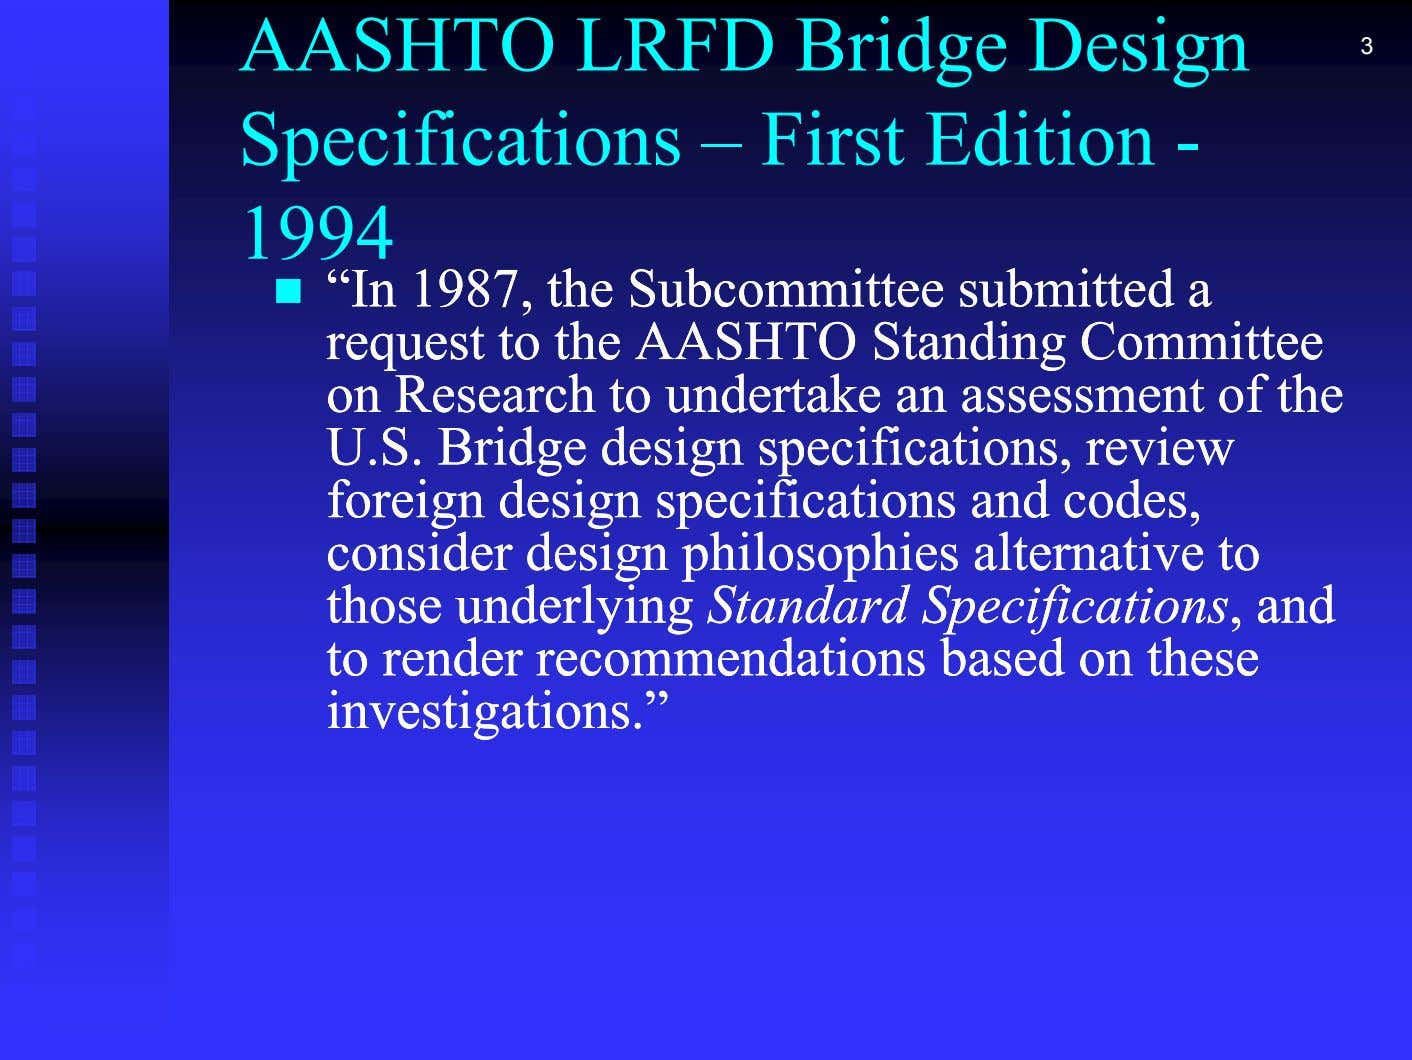 "AASHTO LRFD Bridge Design 3 S p ecifications – First Edition - 1994  """"InIn"